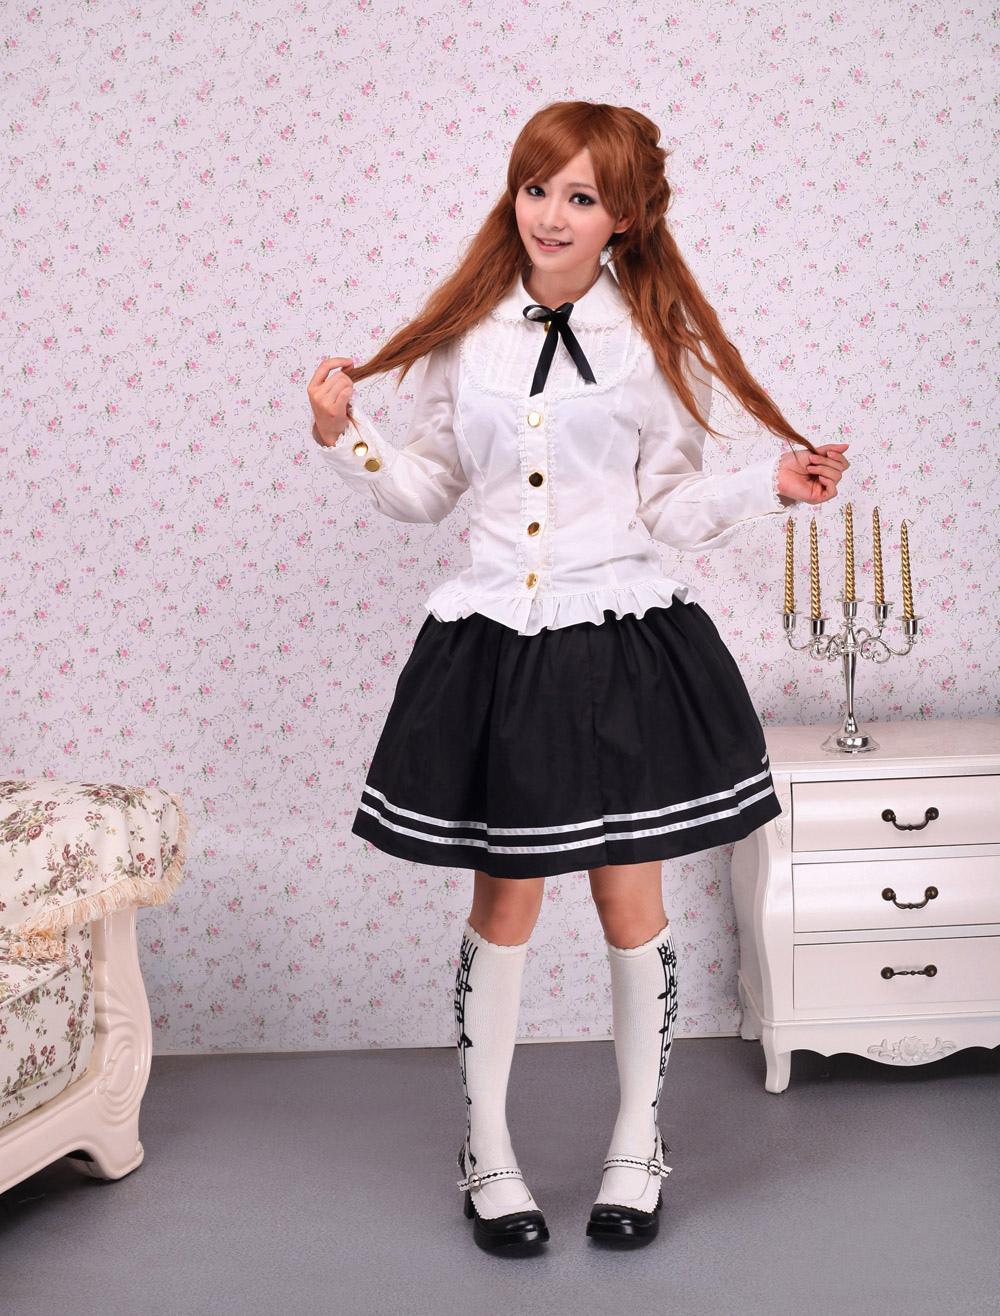 Buy Sweet White Cotton Lolita Blouse Long Sleeves Lace Trim Bow for $38.63 in Milanoo store